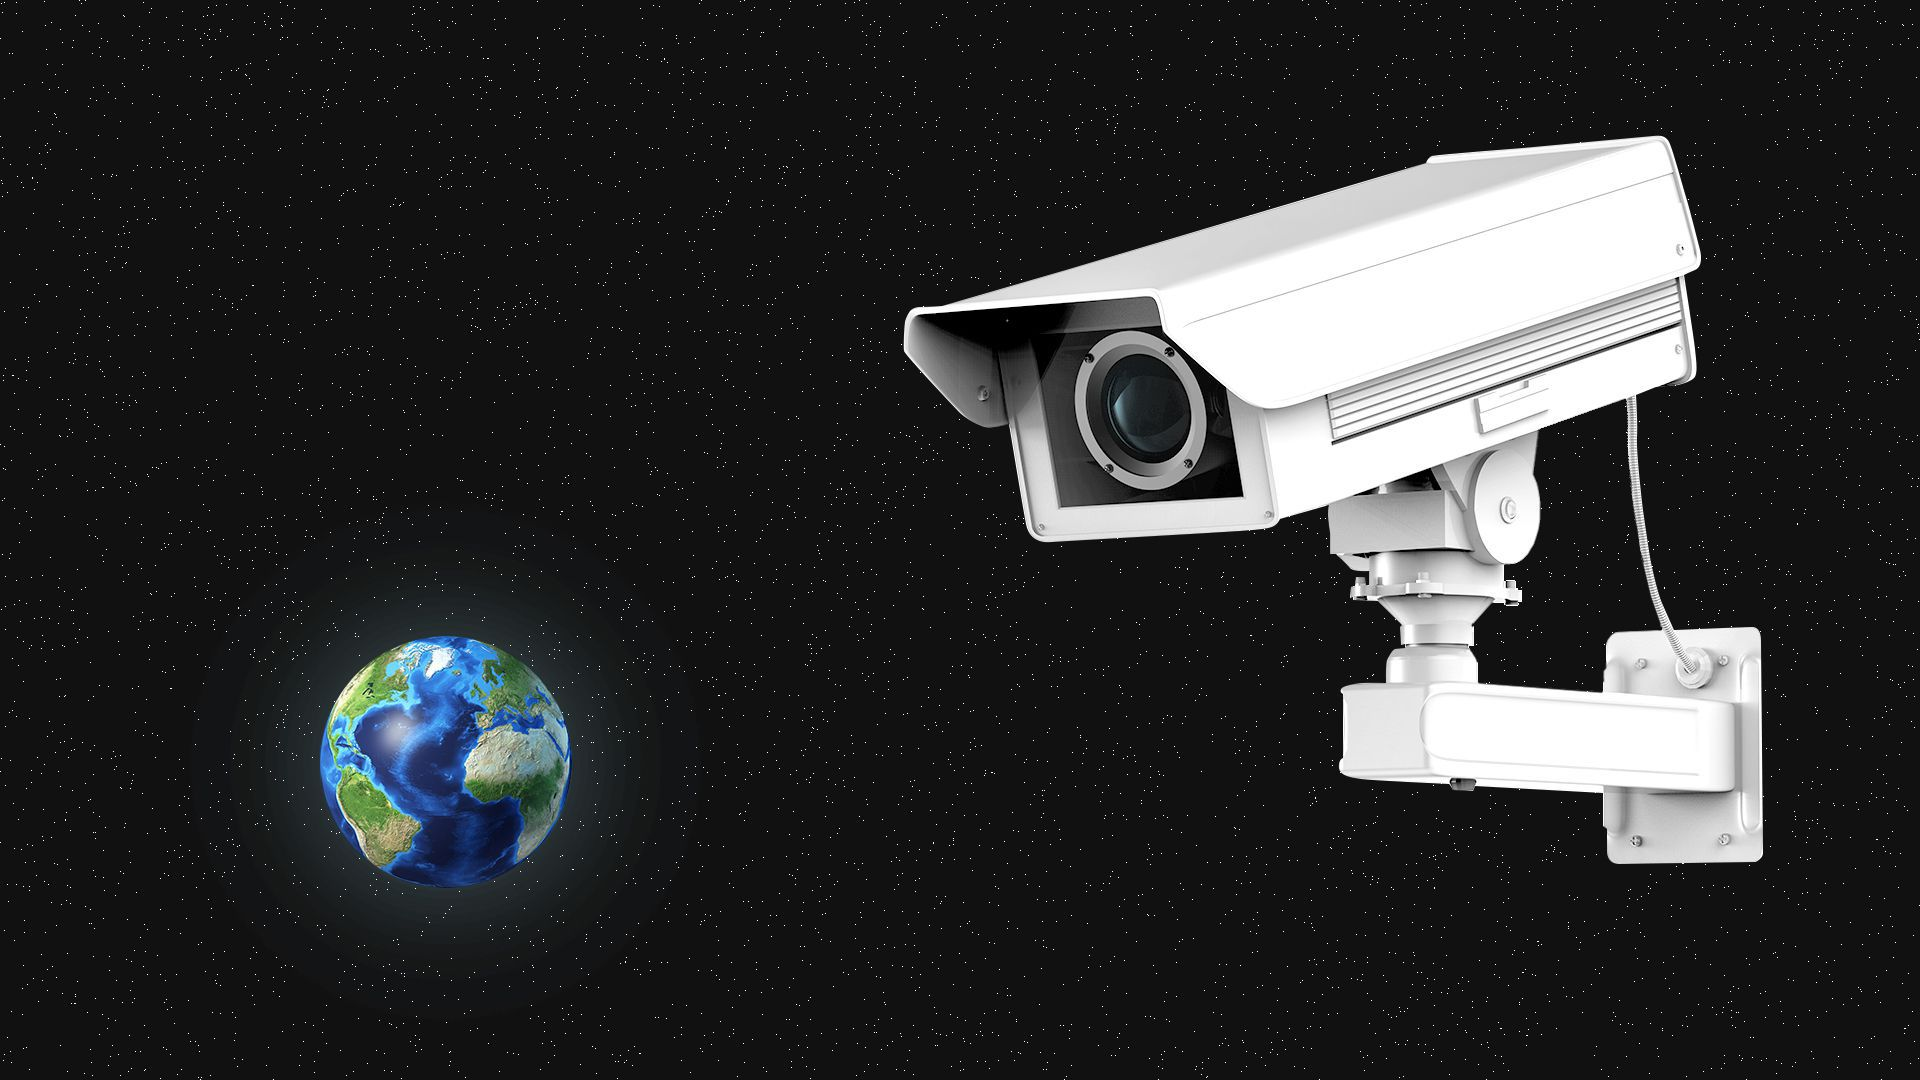 A security camera surveying Earth.